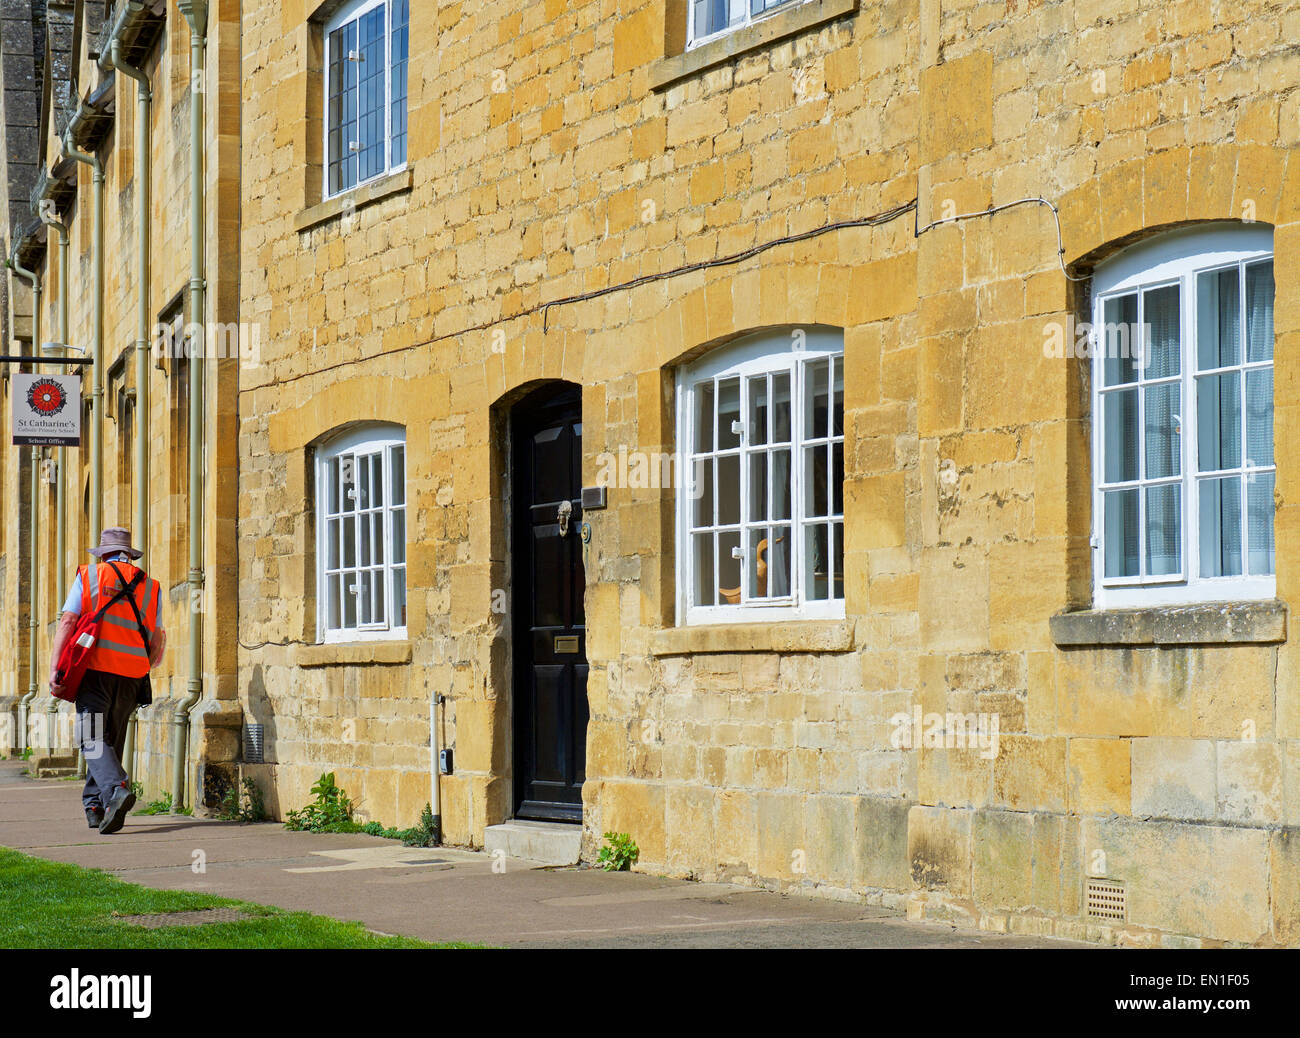 Postman delivering mail in Chipping Campden, Gloucerstershire, Cotswolds, England UK - Stock Image